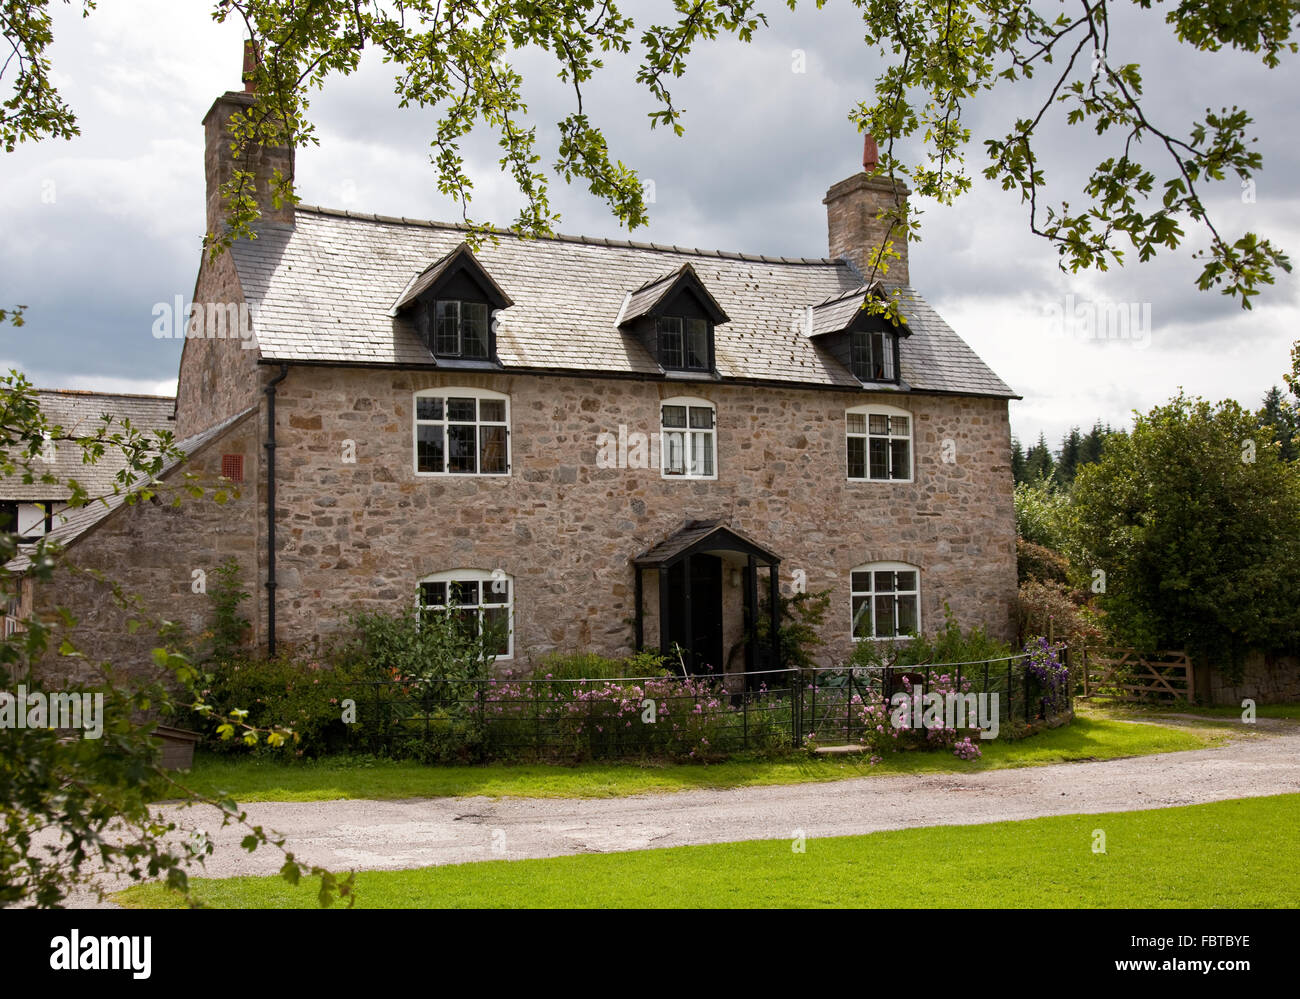 Rough Stone House With Dormer Windows And Surrounding Flowers Roses